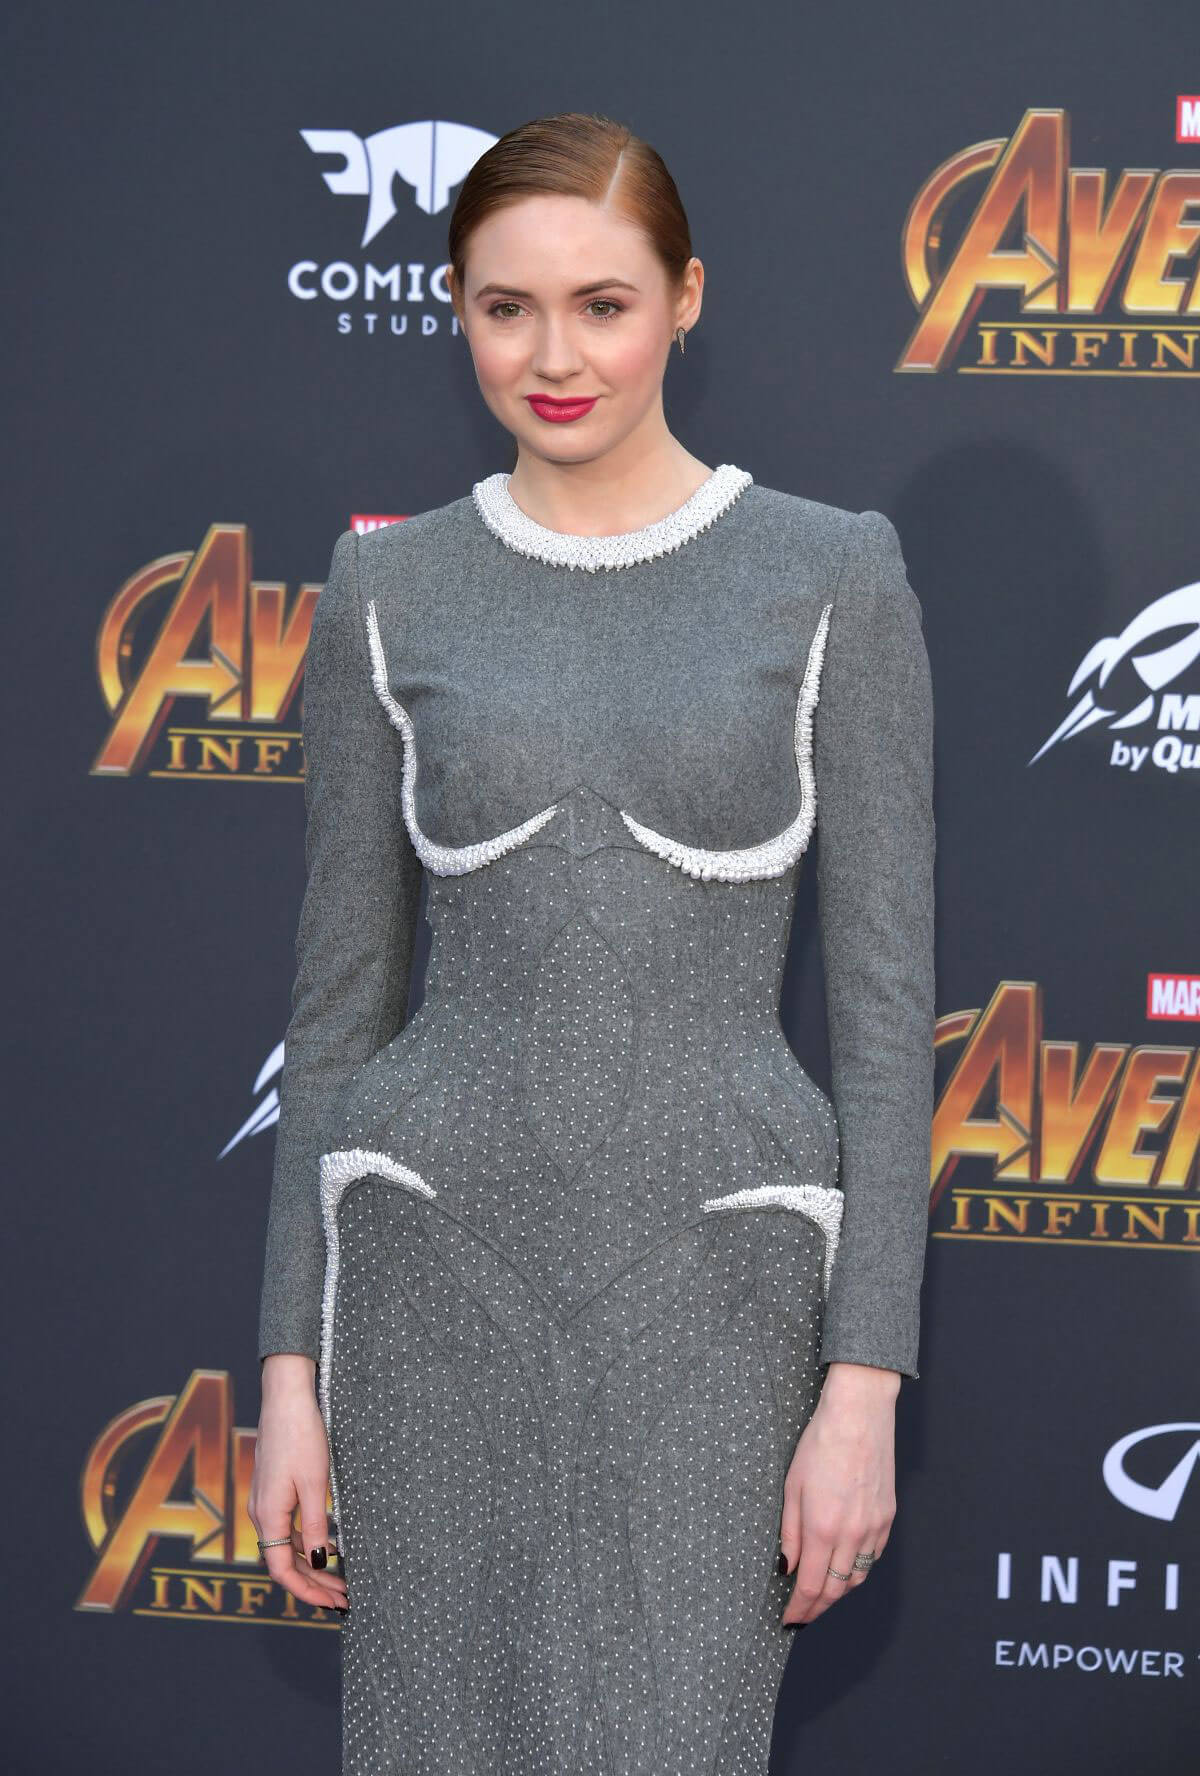 Karen Gillan Stills at Avengers: Infinity War Premiere in Los Angeles 2018/04/23 13